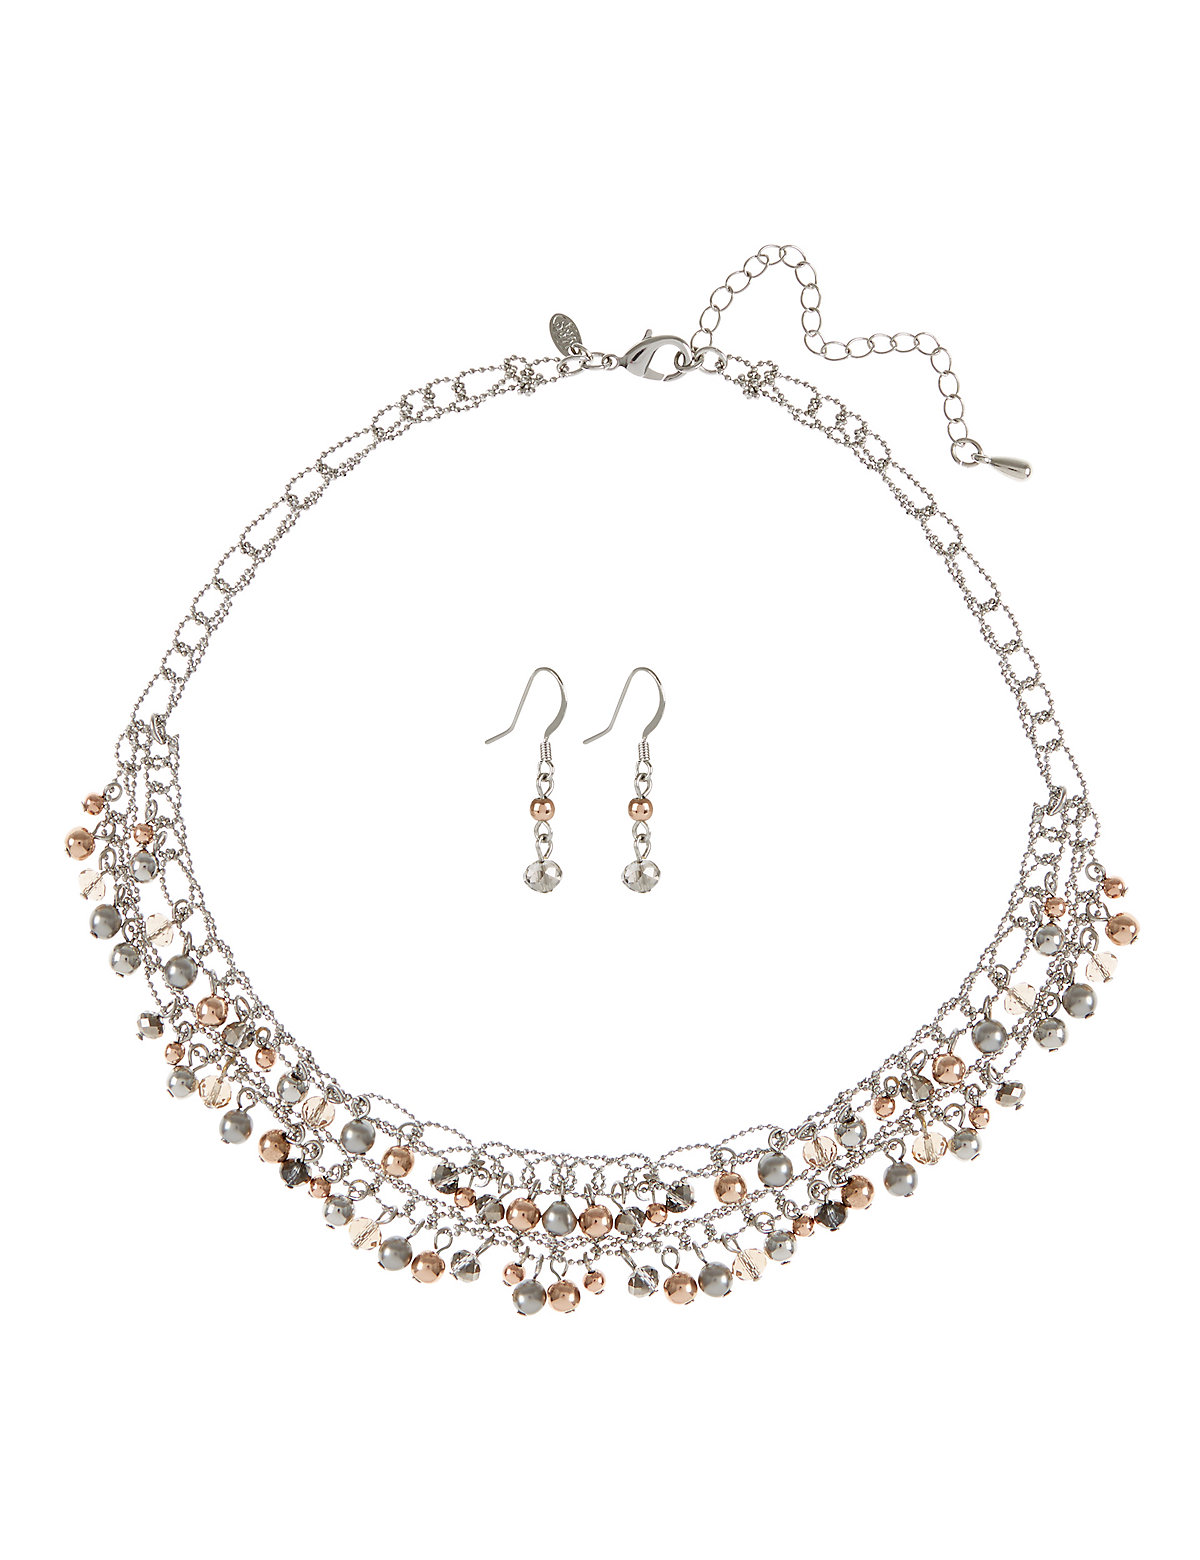 Bead Mini Twisted Necklace Earrings Set Grey One Size